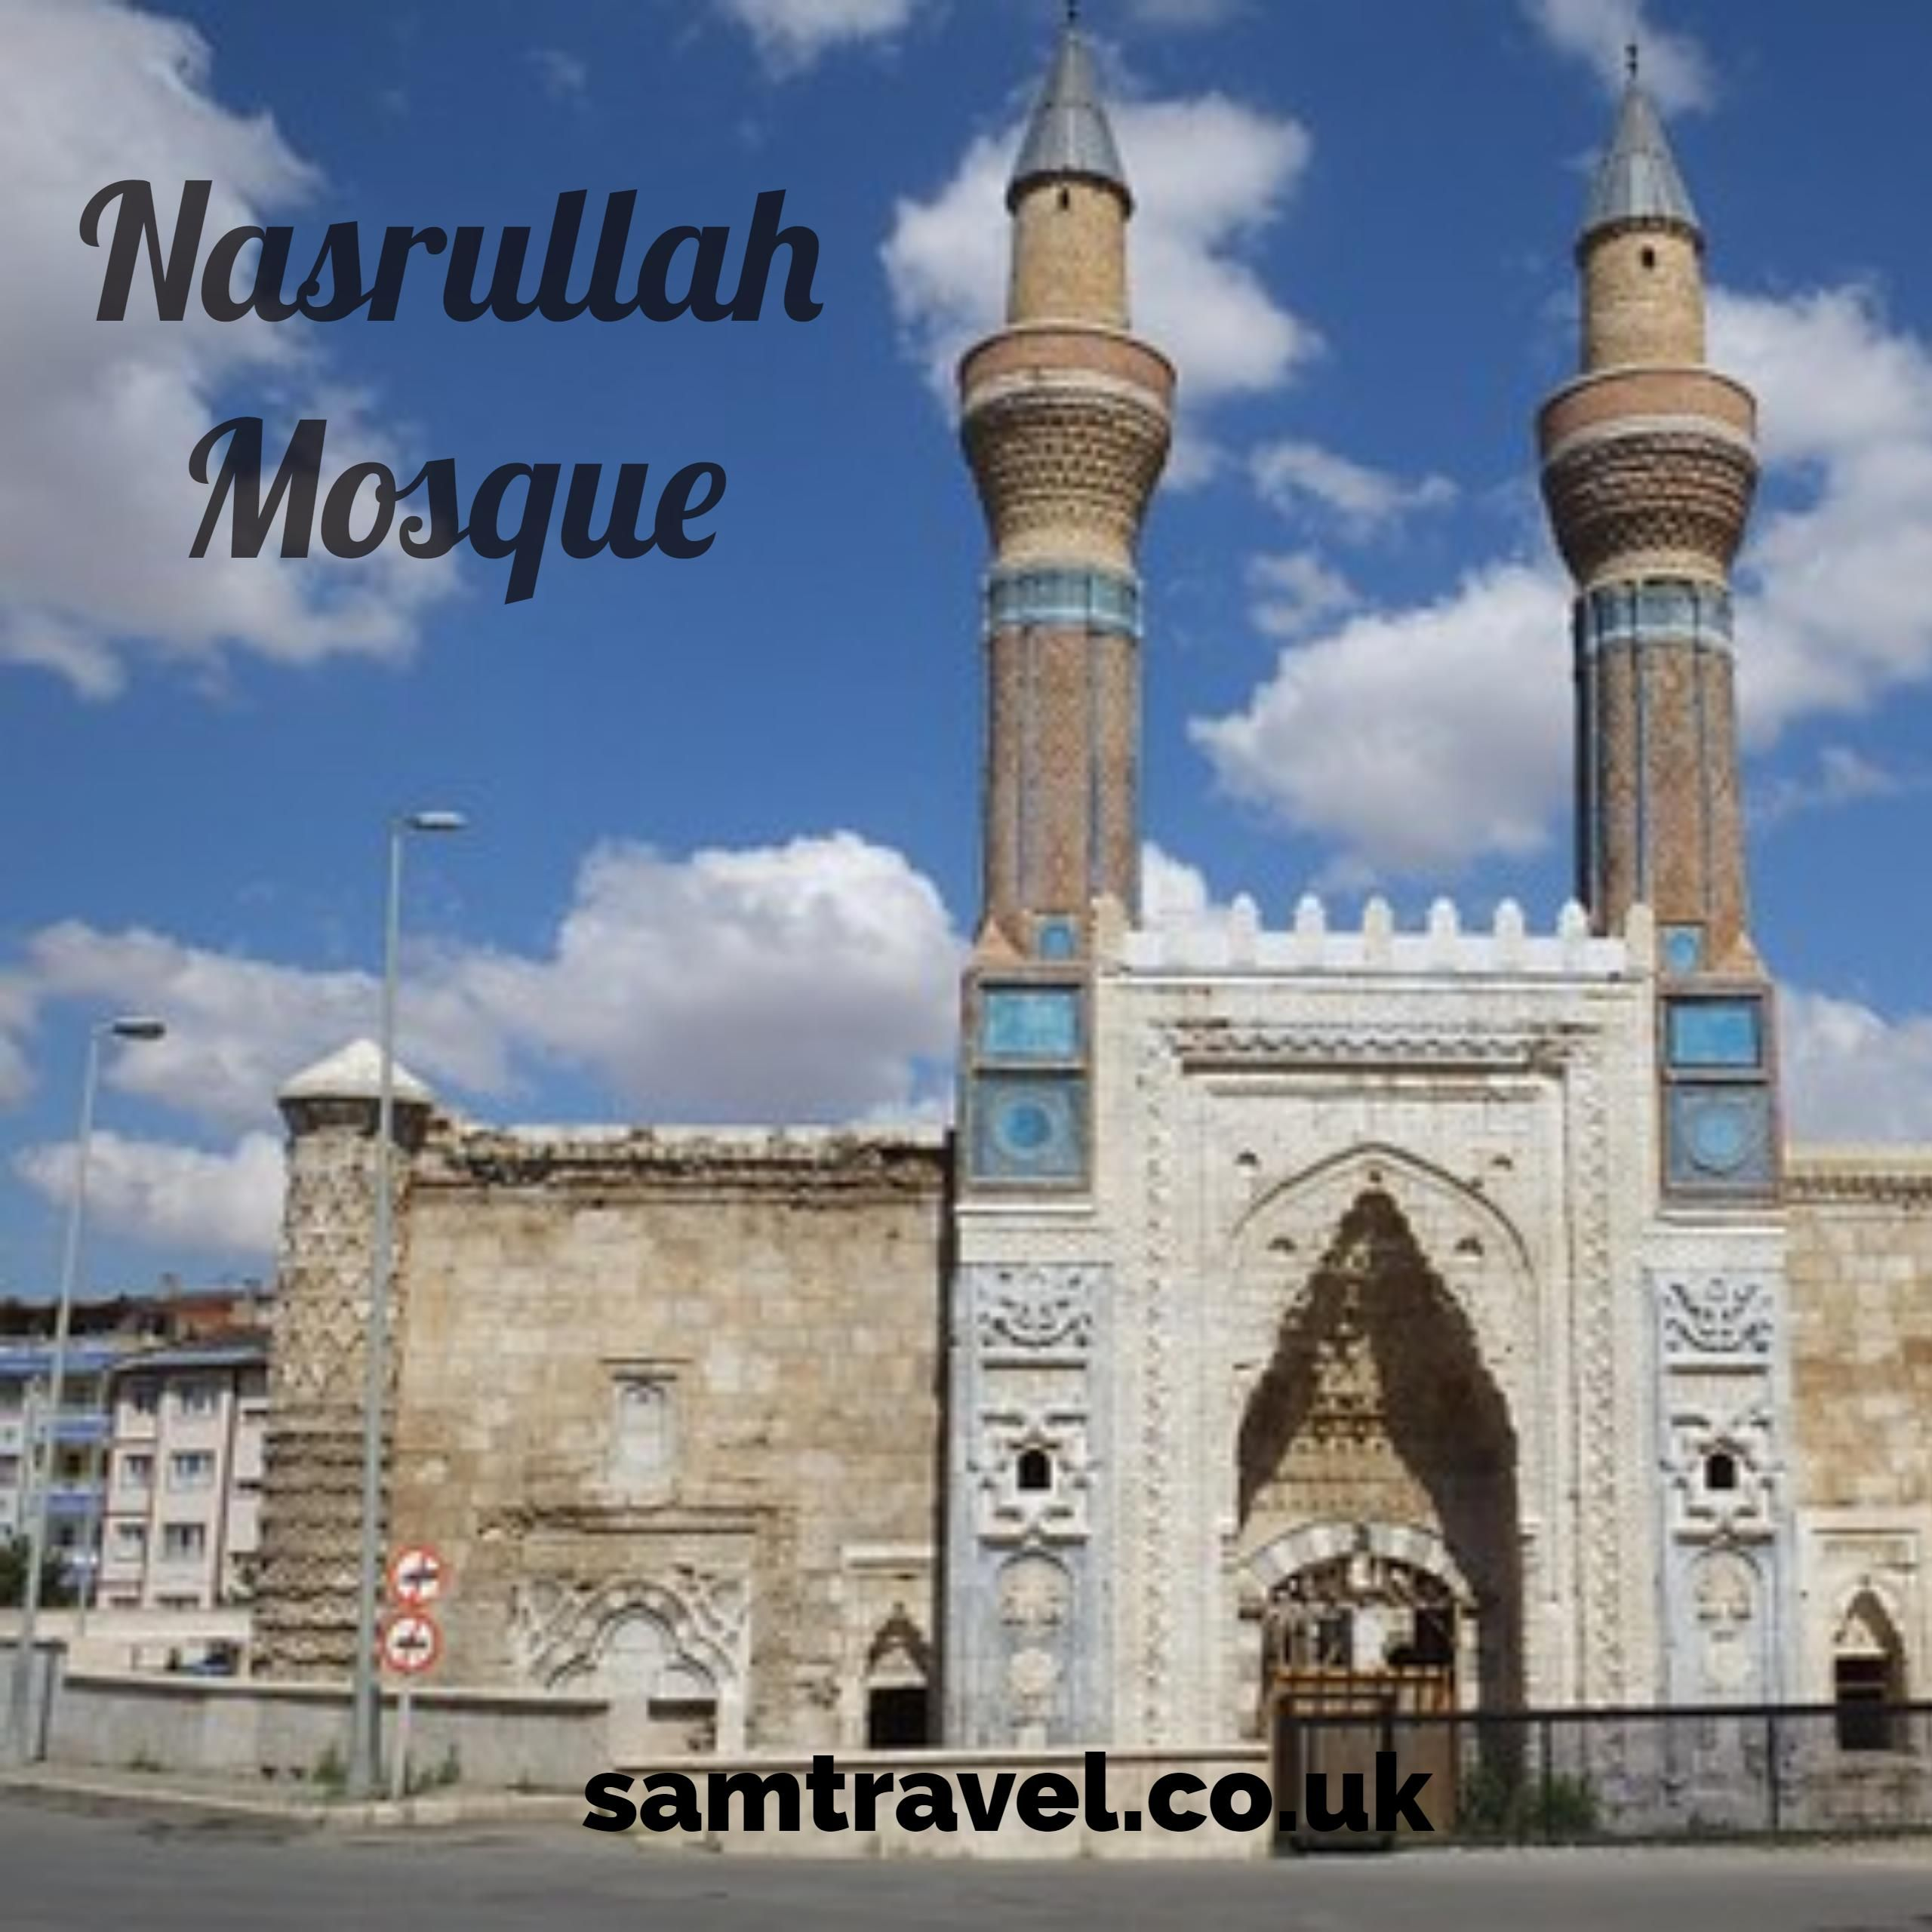 Nasrullah Mosque Ottoman Mosque In Kastamonu Turkey It Is Located In